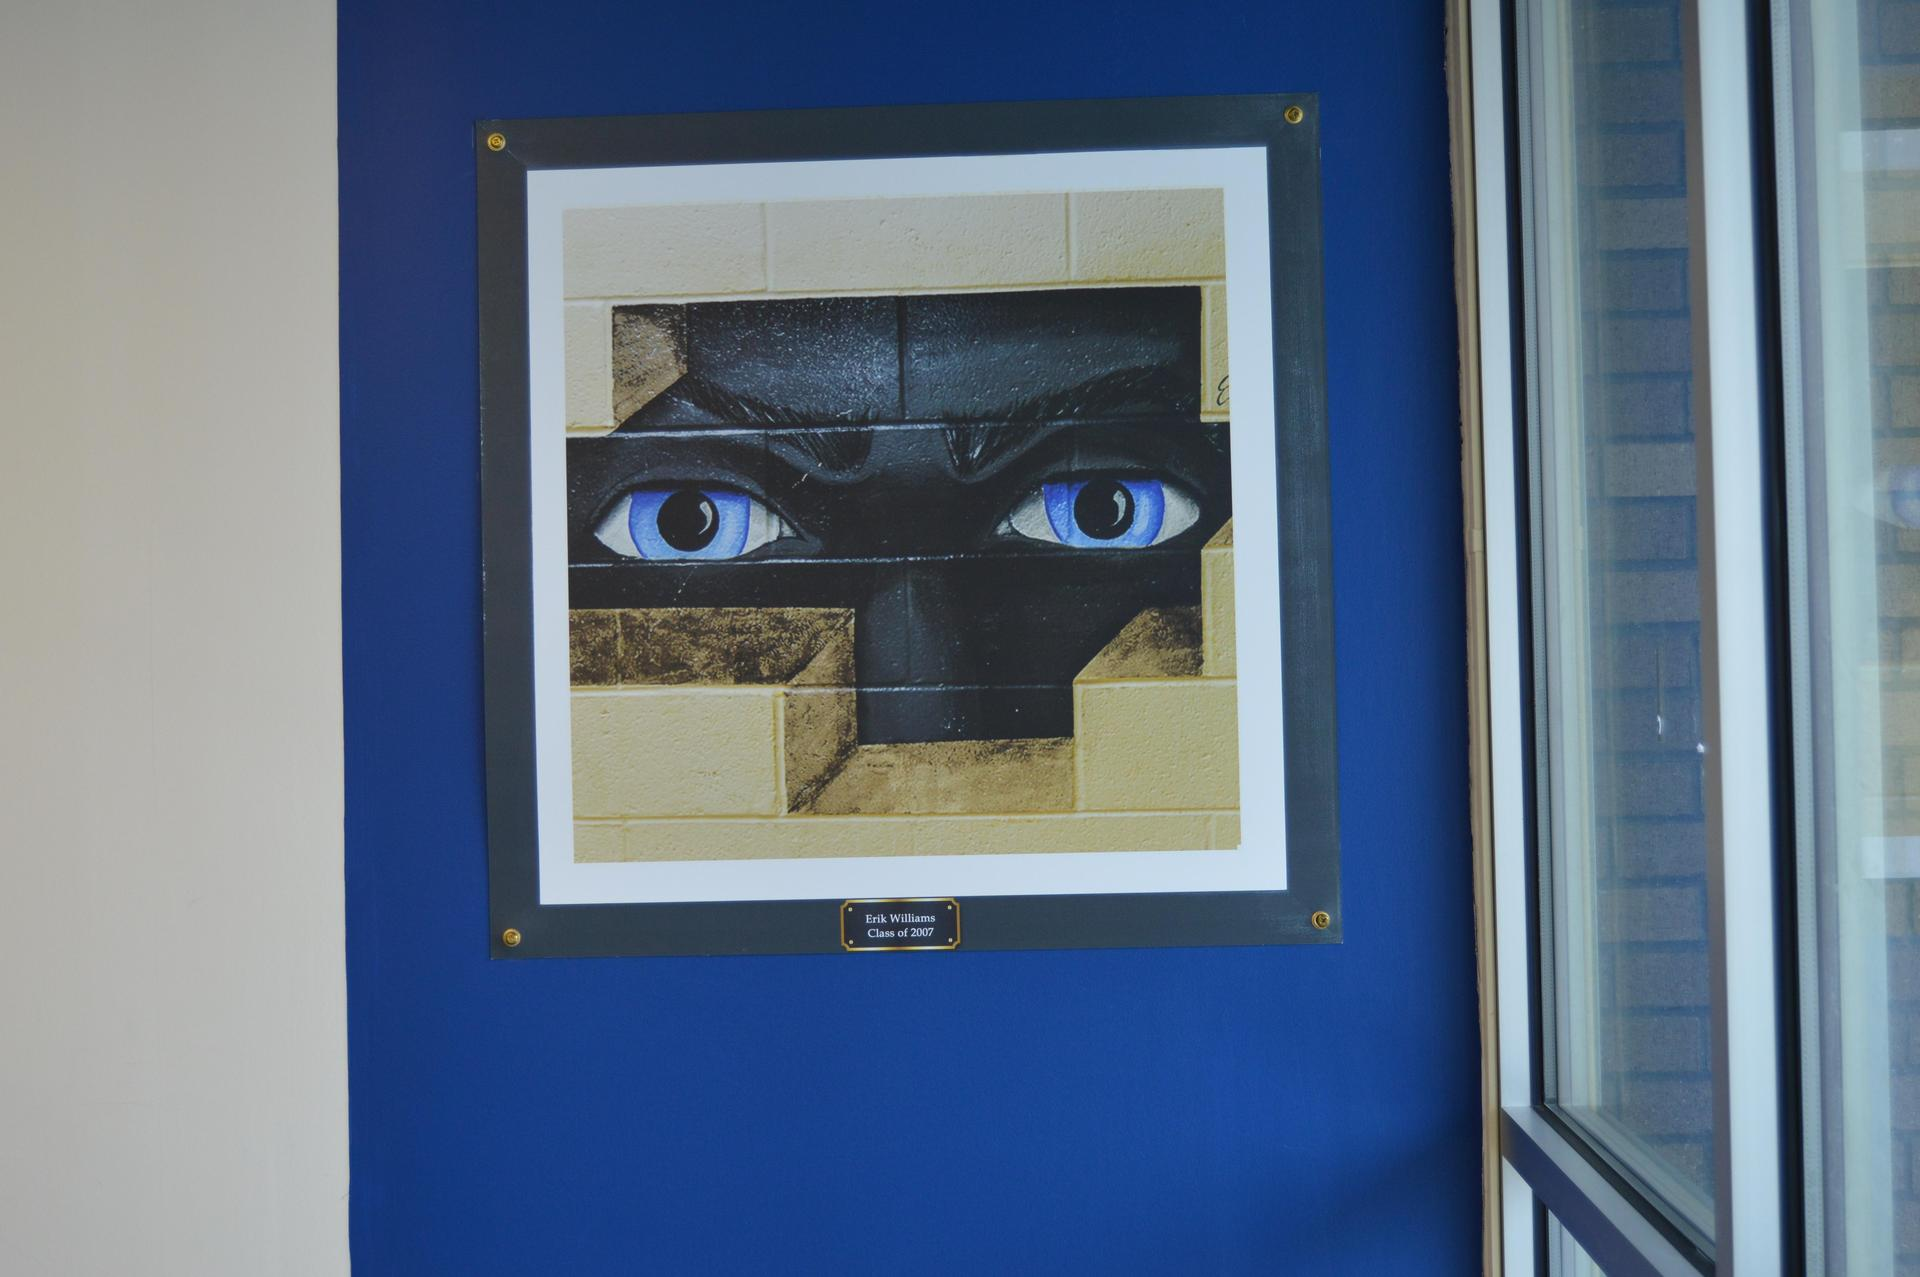 Mural of a black face with large blue eyes looking through bricks on a wall